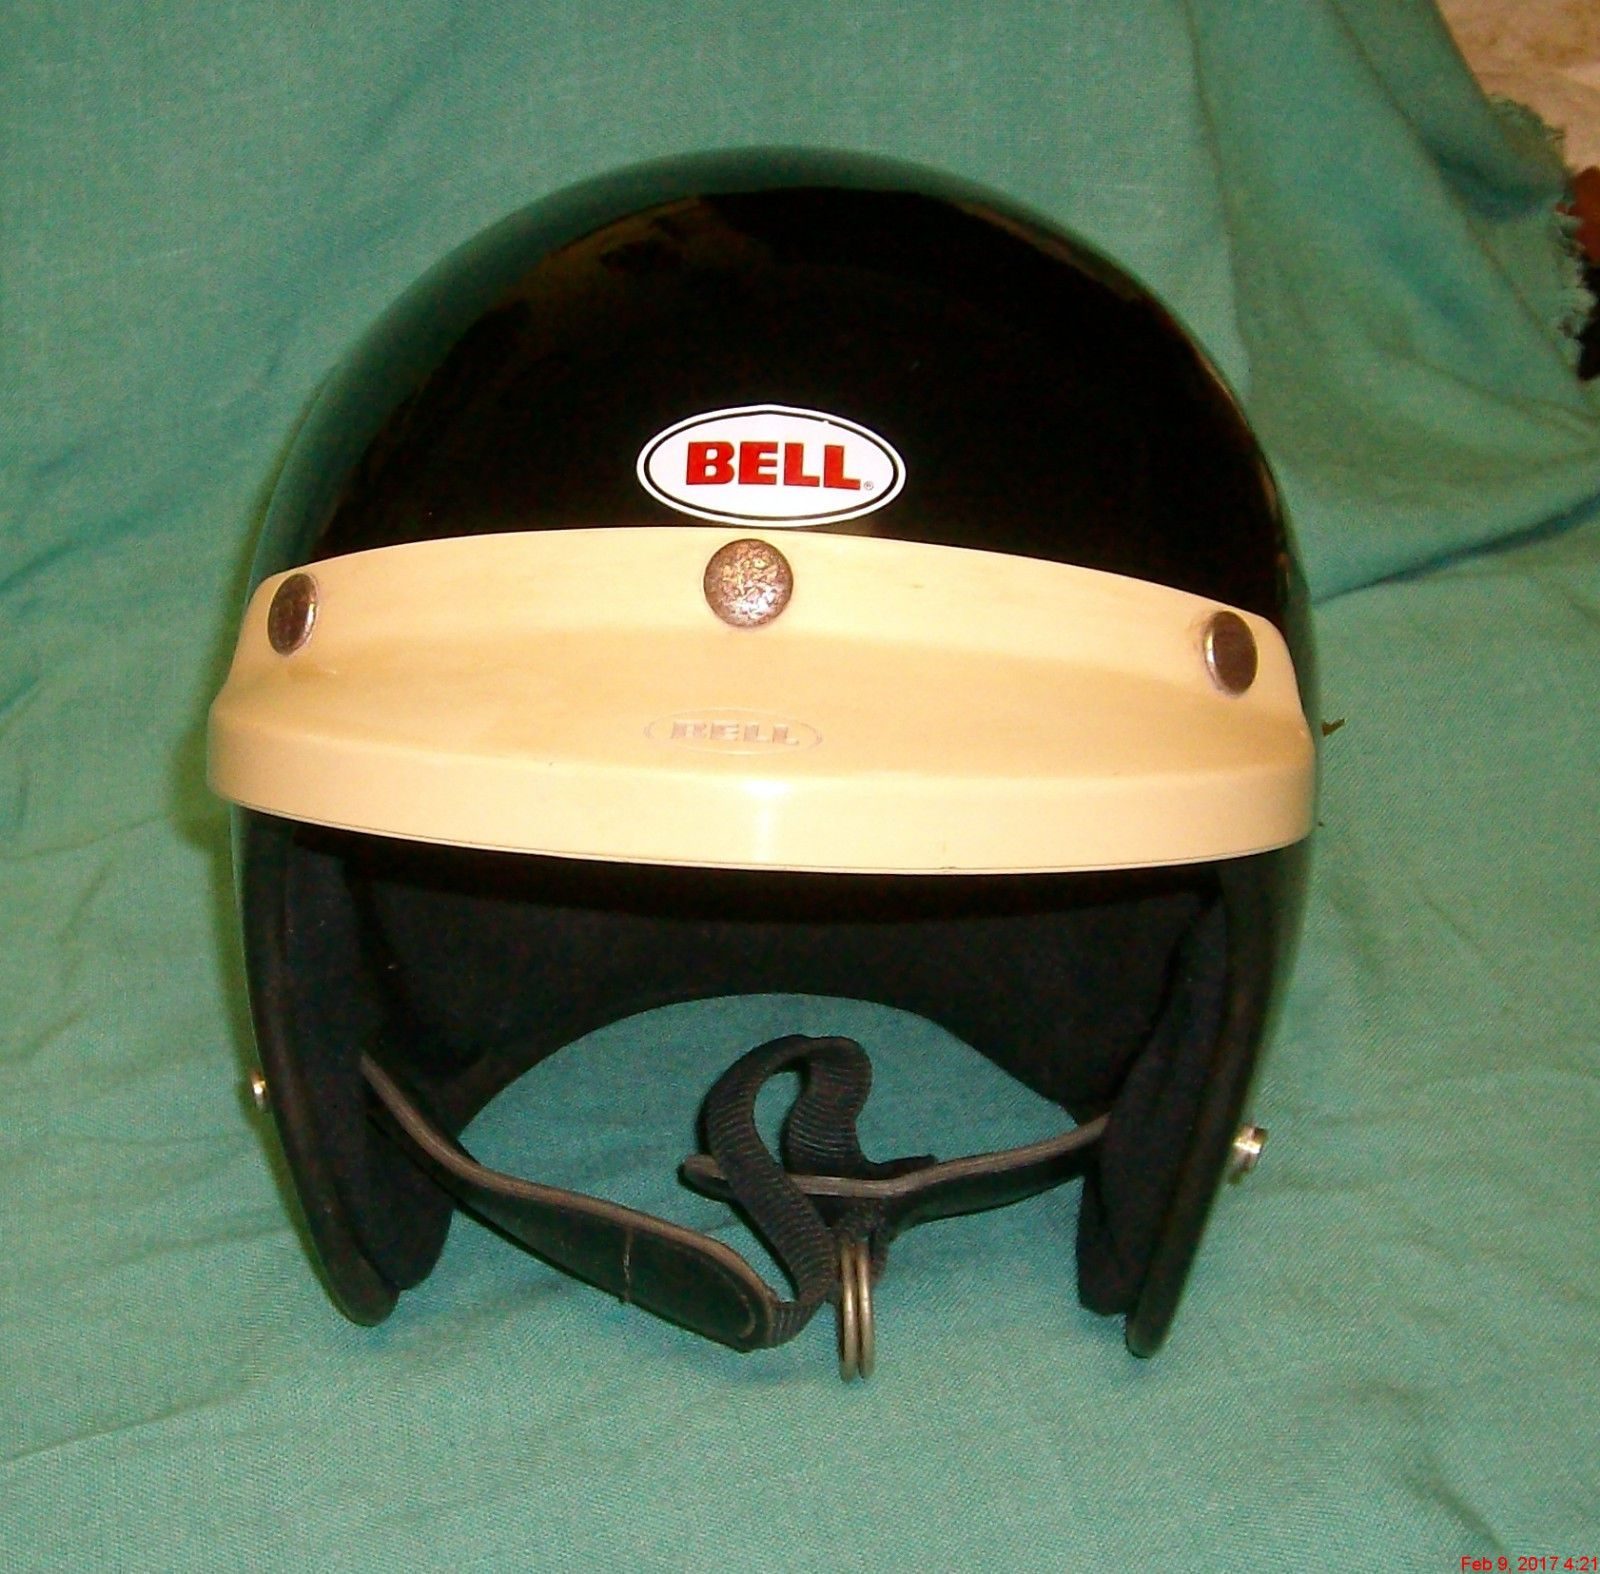 Bell custom 500 gloss black vintage low profile helmet chopper harley -  Apparel Vintage Gloss Black Bell Rt Motorcycle Helmet R T Usa 7 79 Size 7